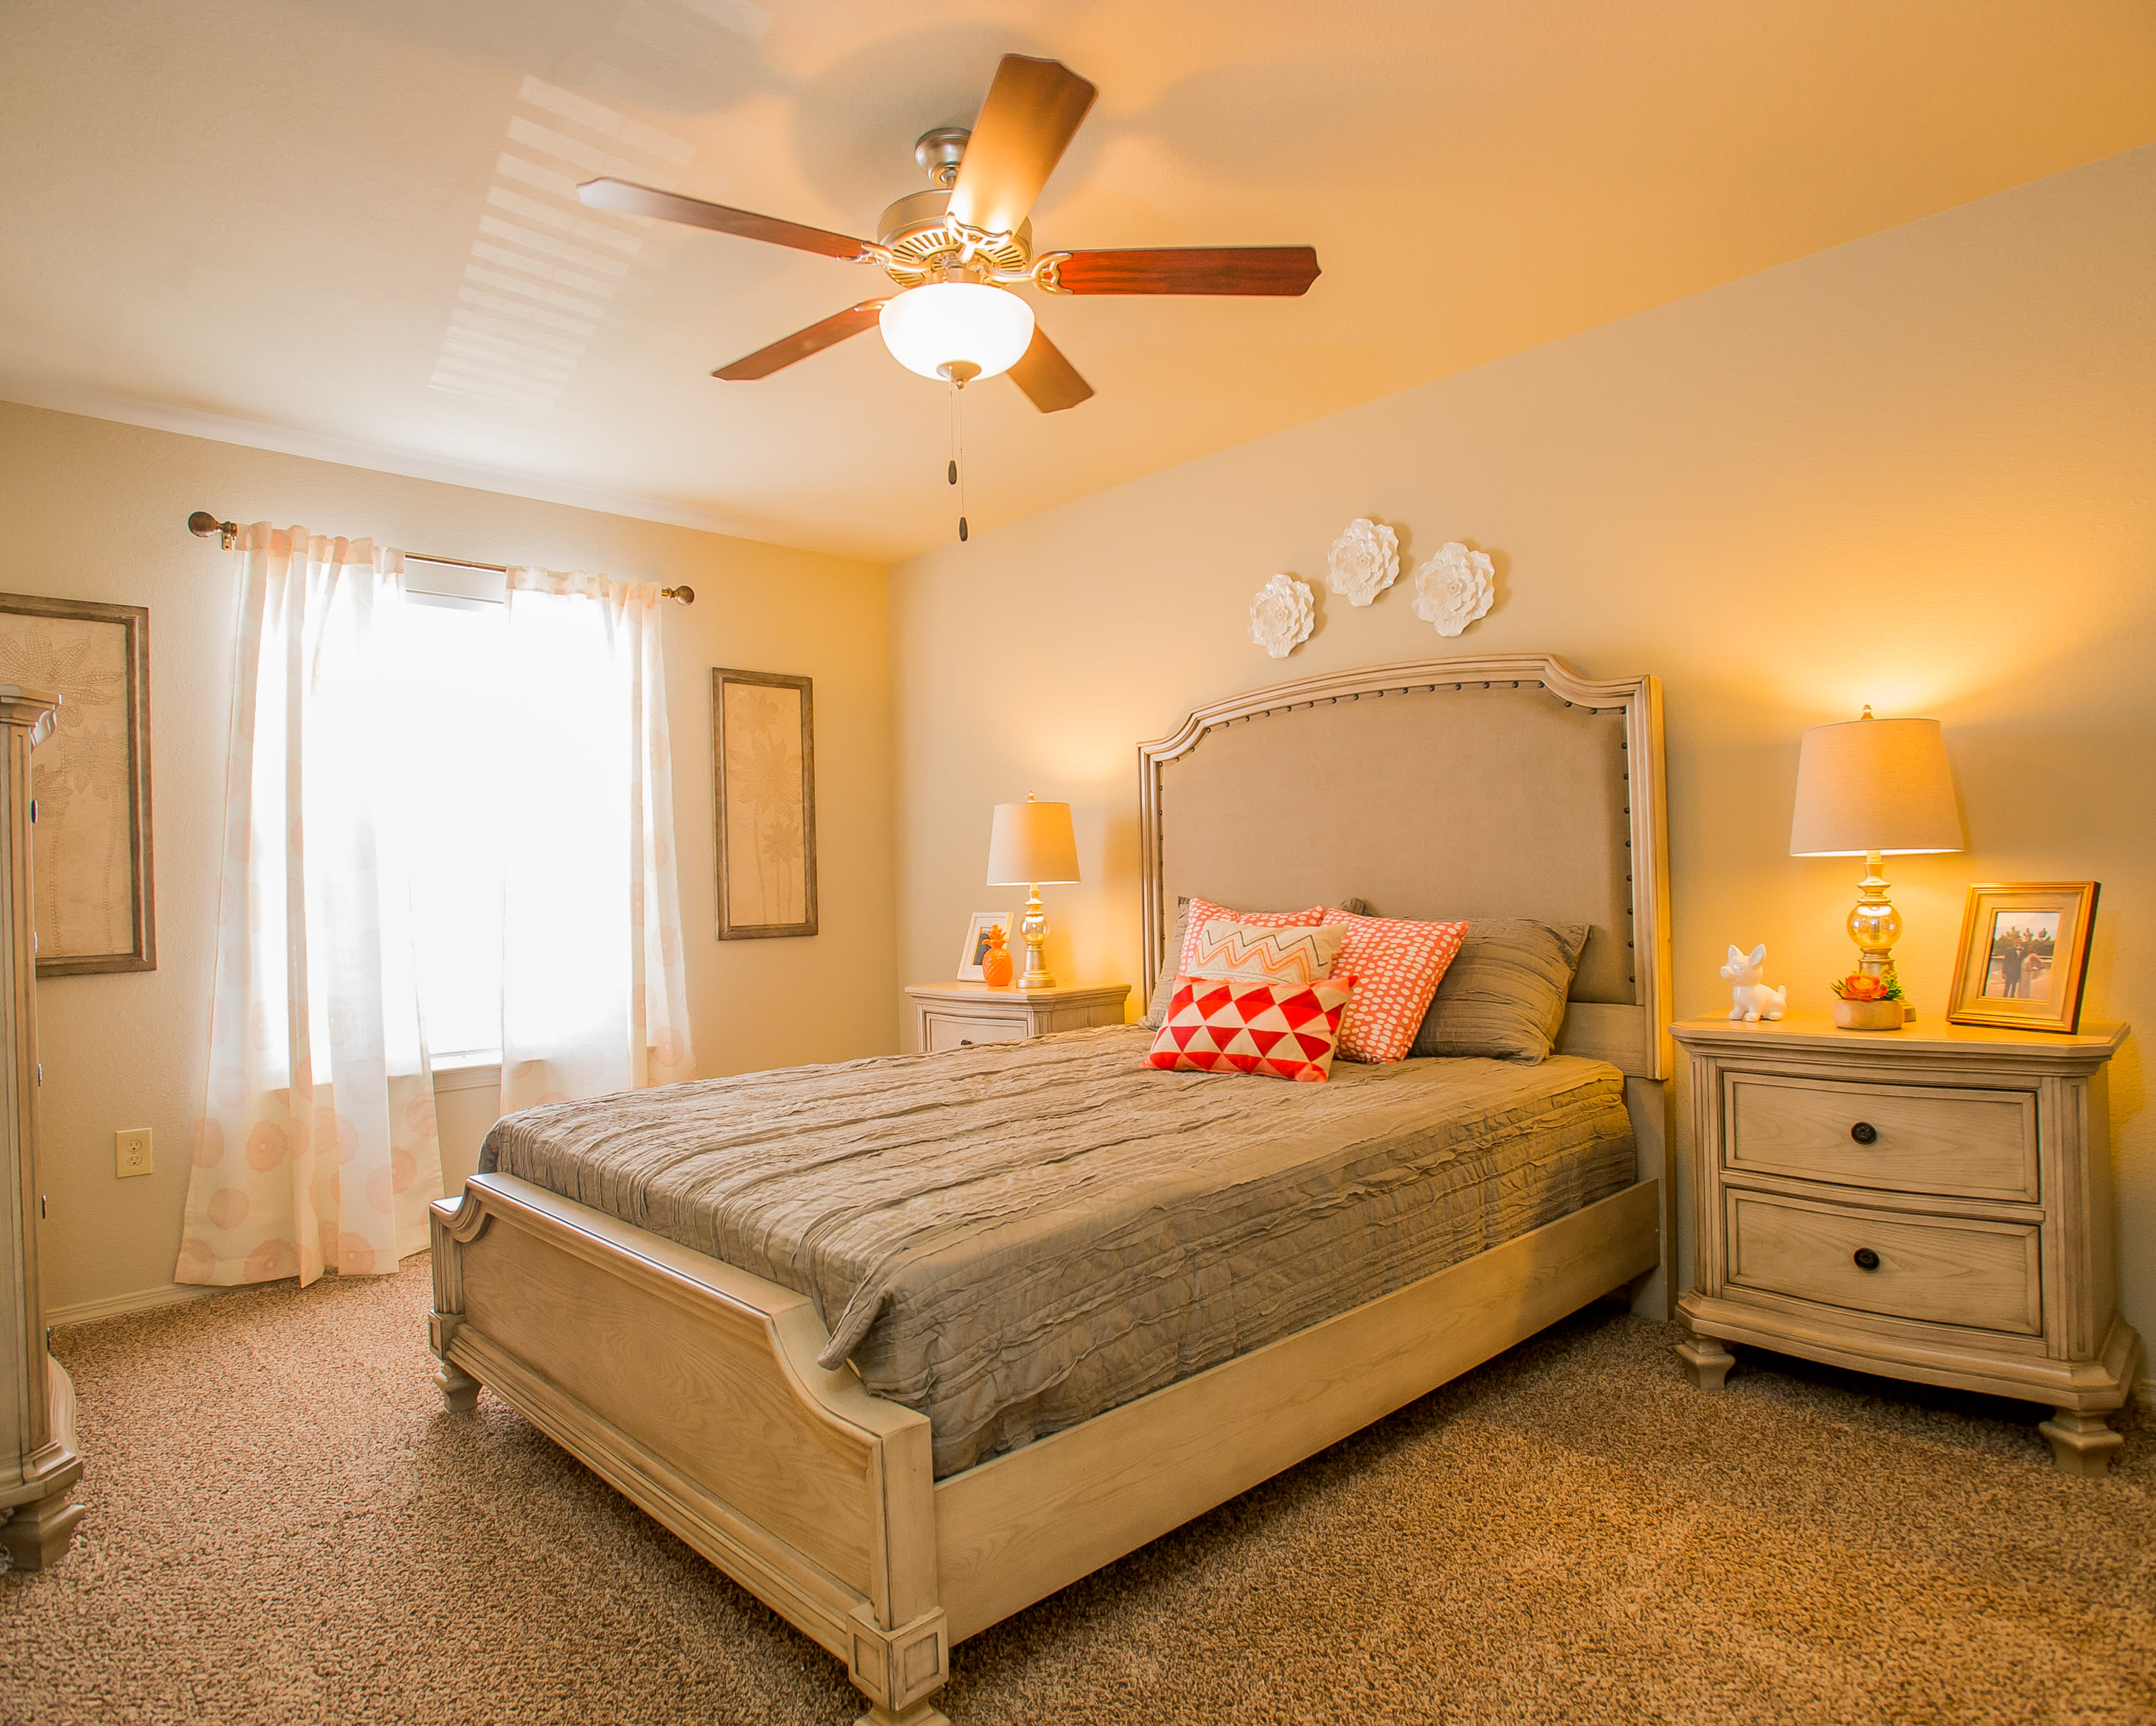 Bedroom at Portico at Friars Creek Apartments in Temple, Texas